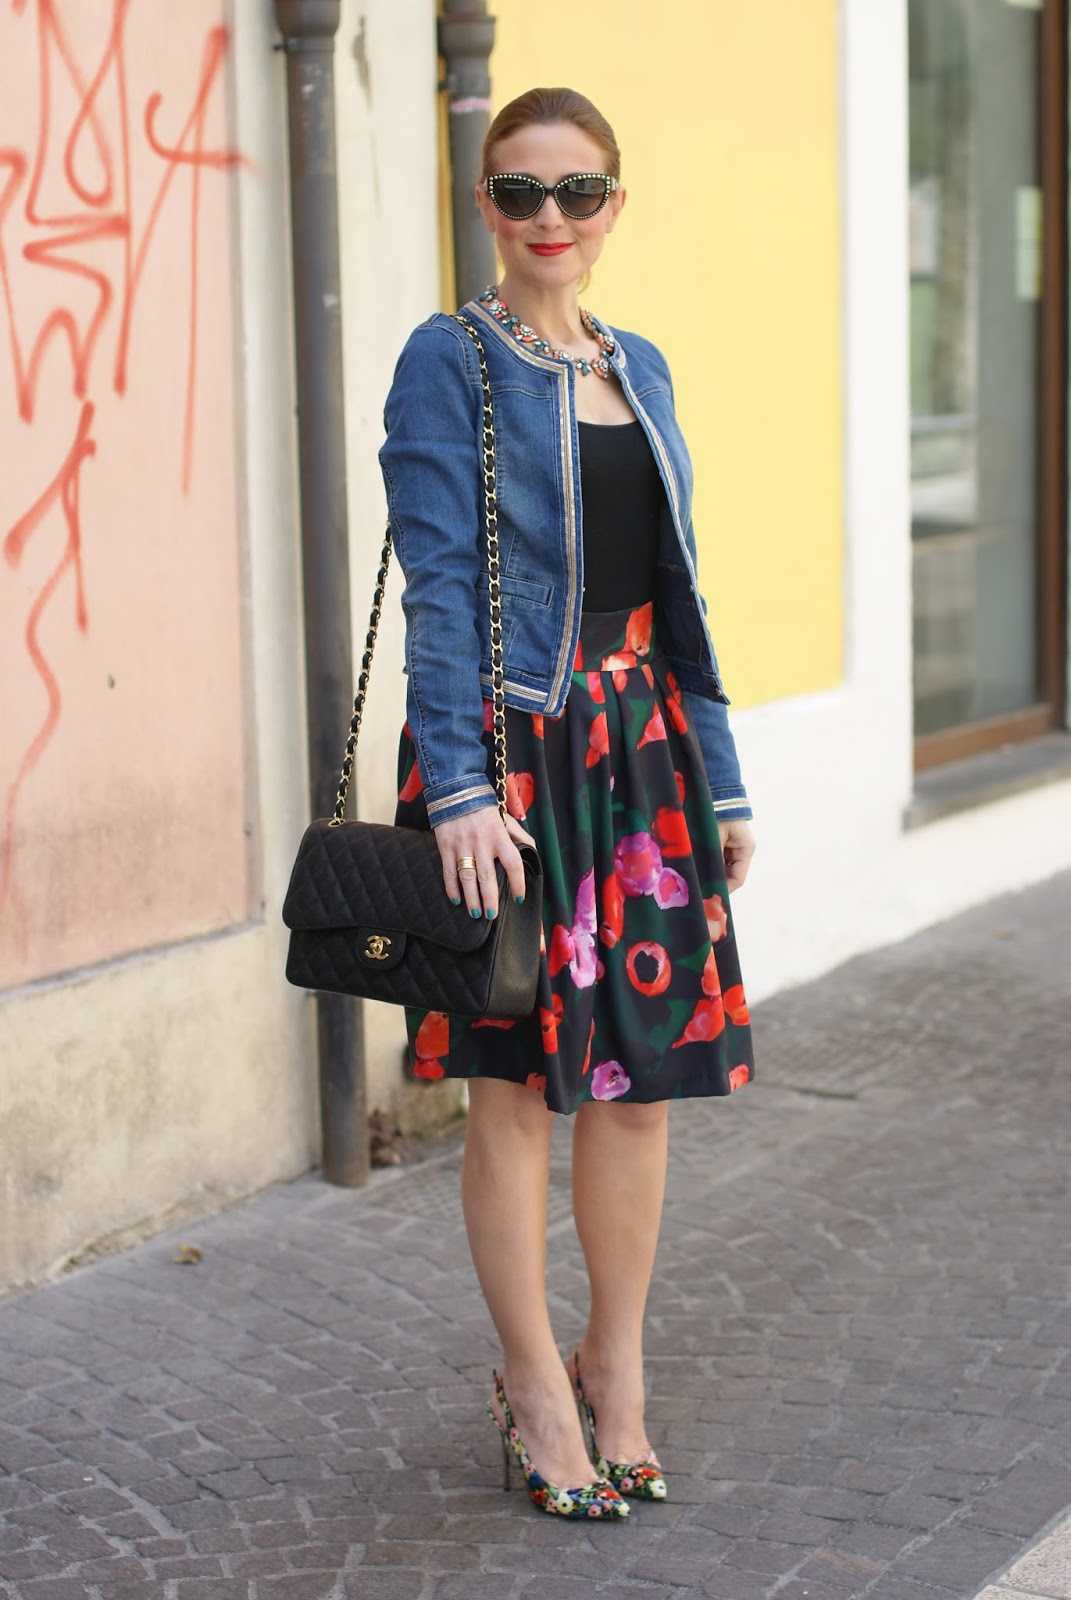 Wolford body worn with skirt and denim jacket, Happiness Boutique necklace and Walktrendy skirt on Fashion and Cookies fashion blog, fashion blogger style